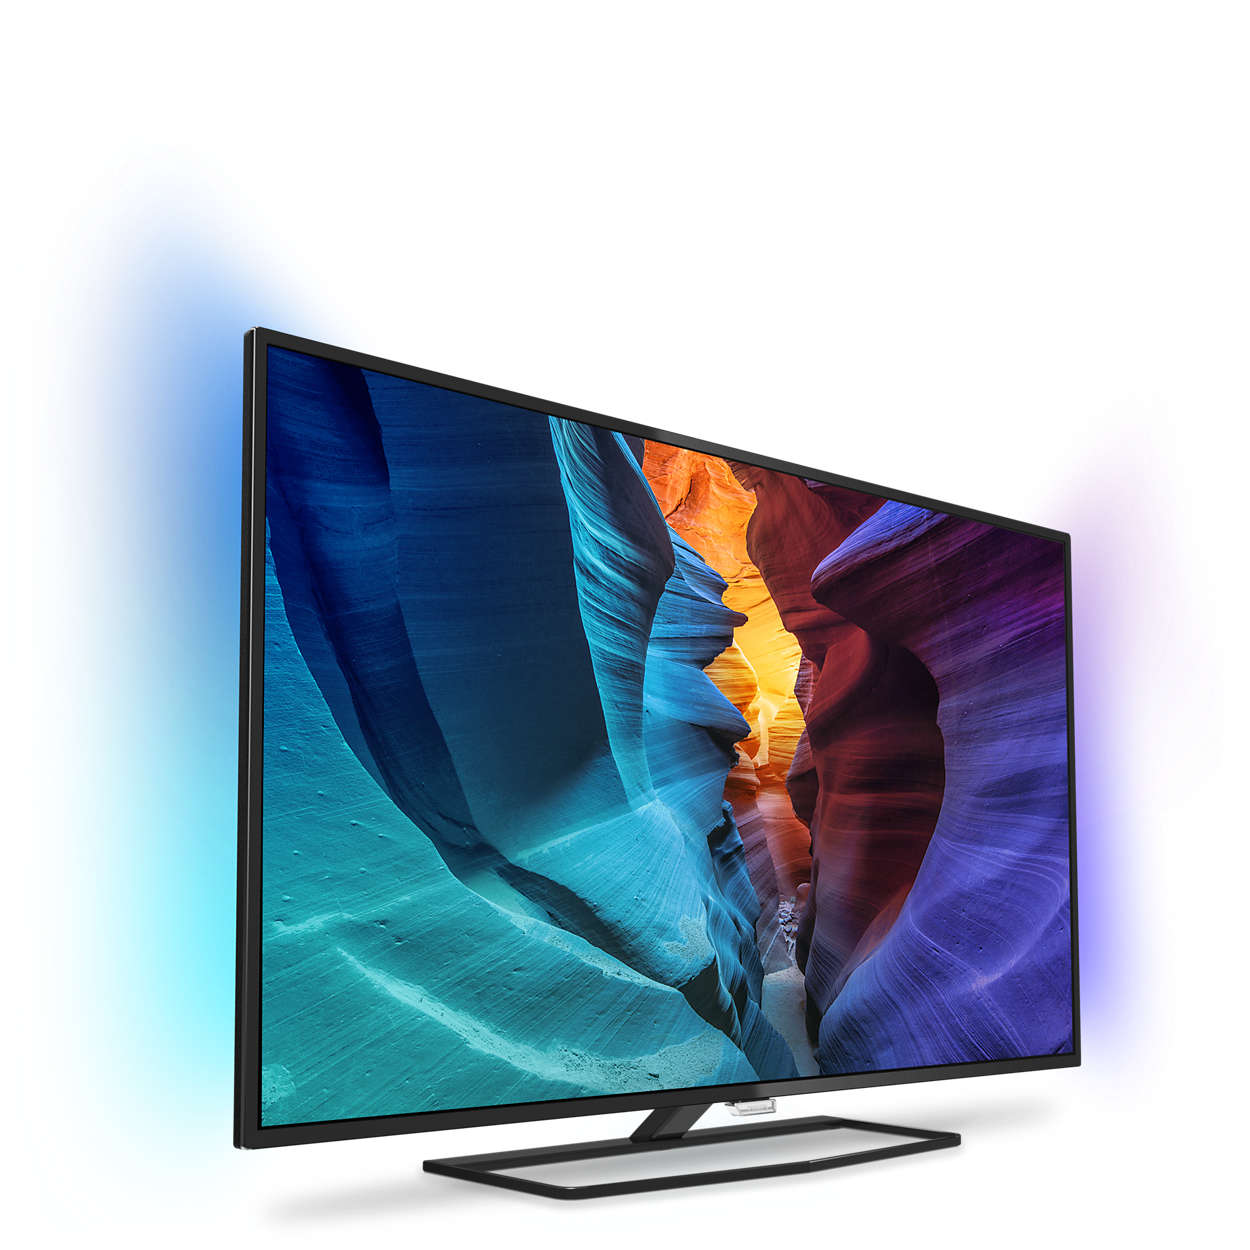 4K UHD Slim LED TV powered by Android